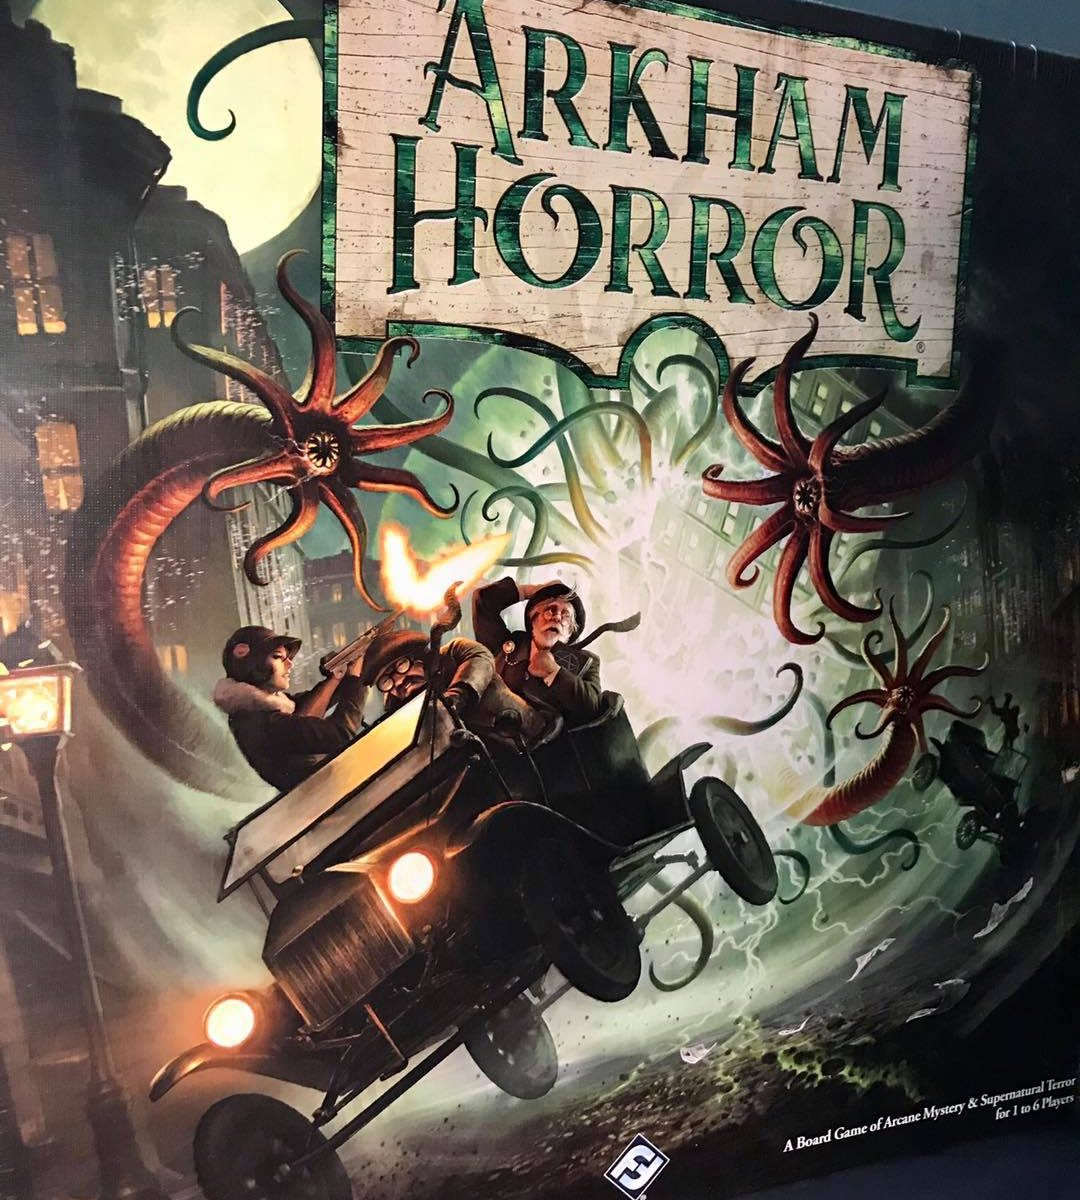 arkham horror board game review from battlehops brewing board game cafe in katy tx